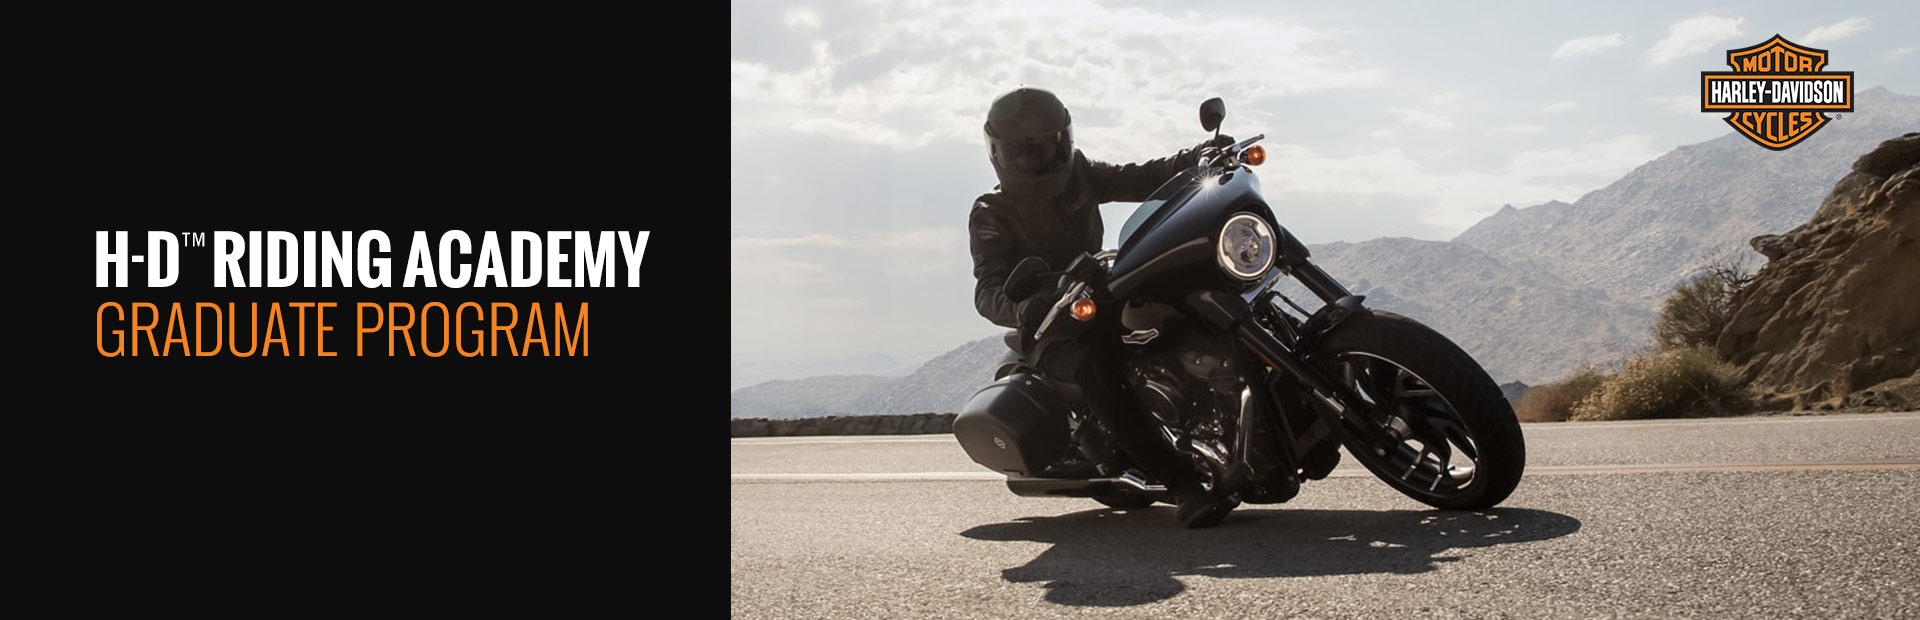 H-D™ Riding Academy Graduate Program